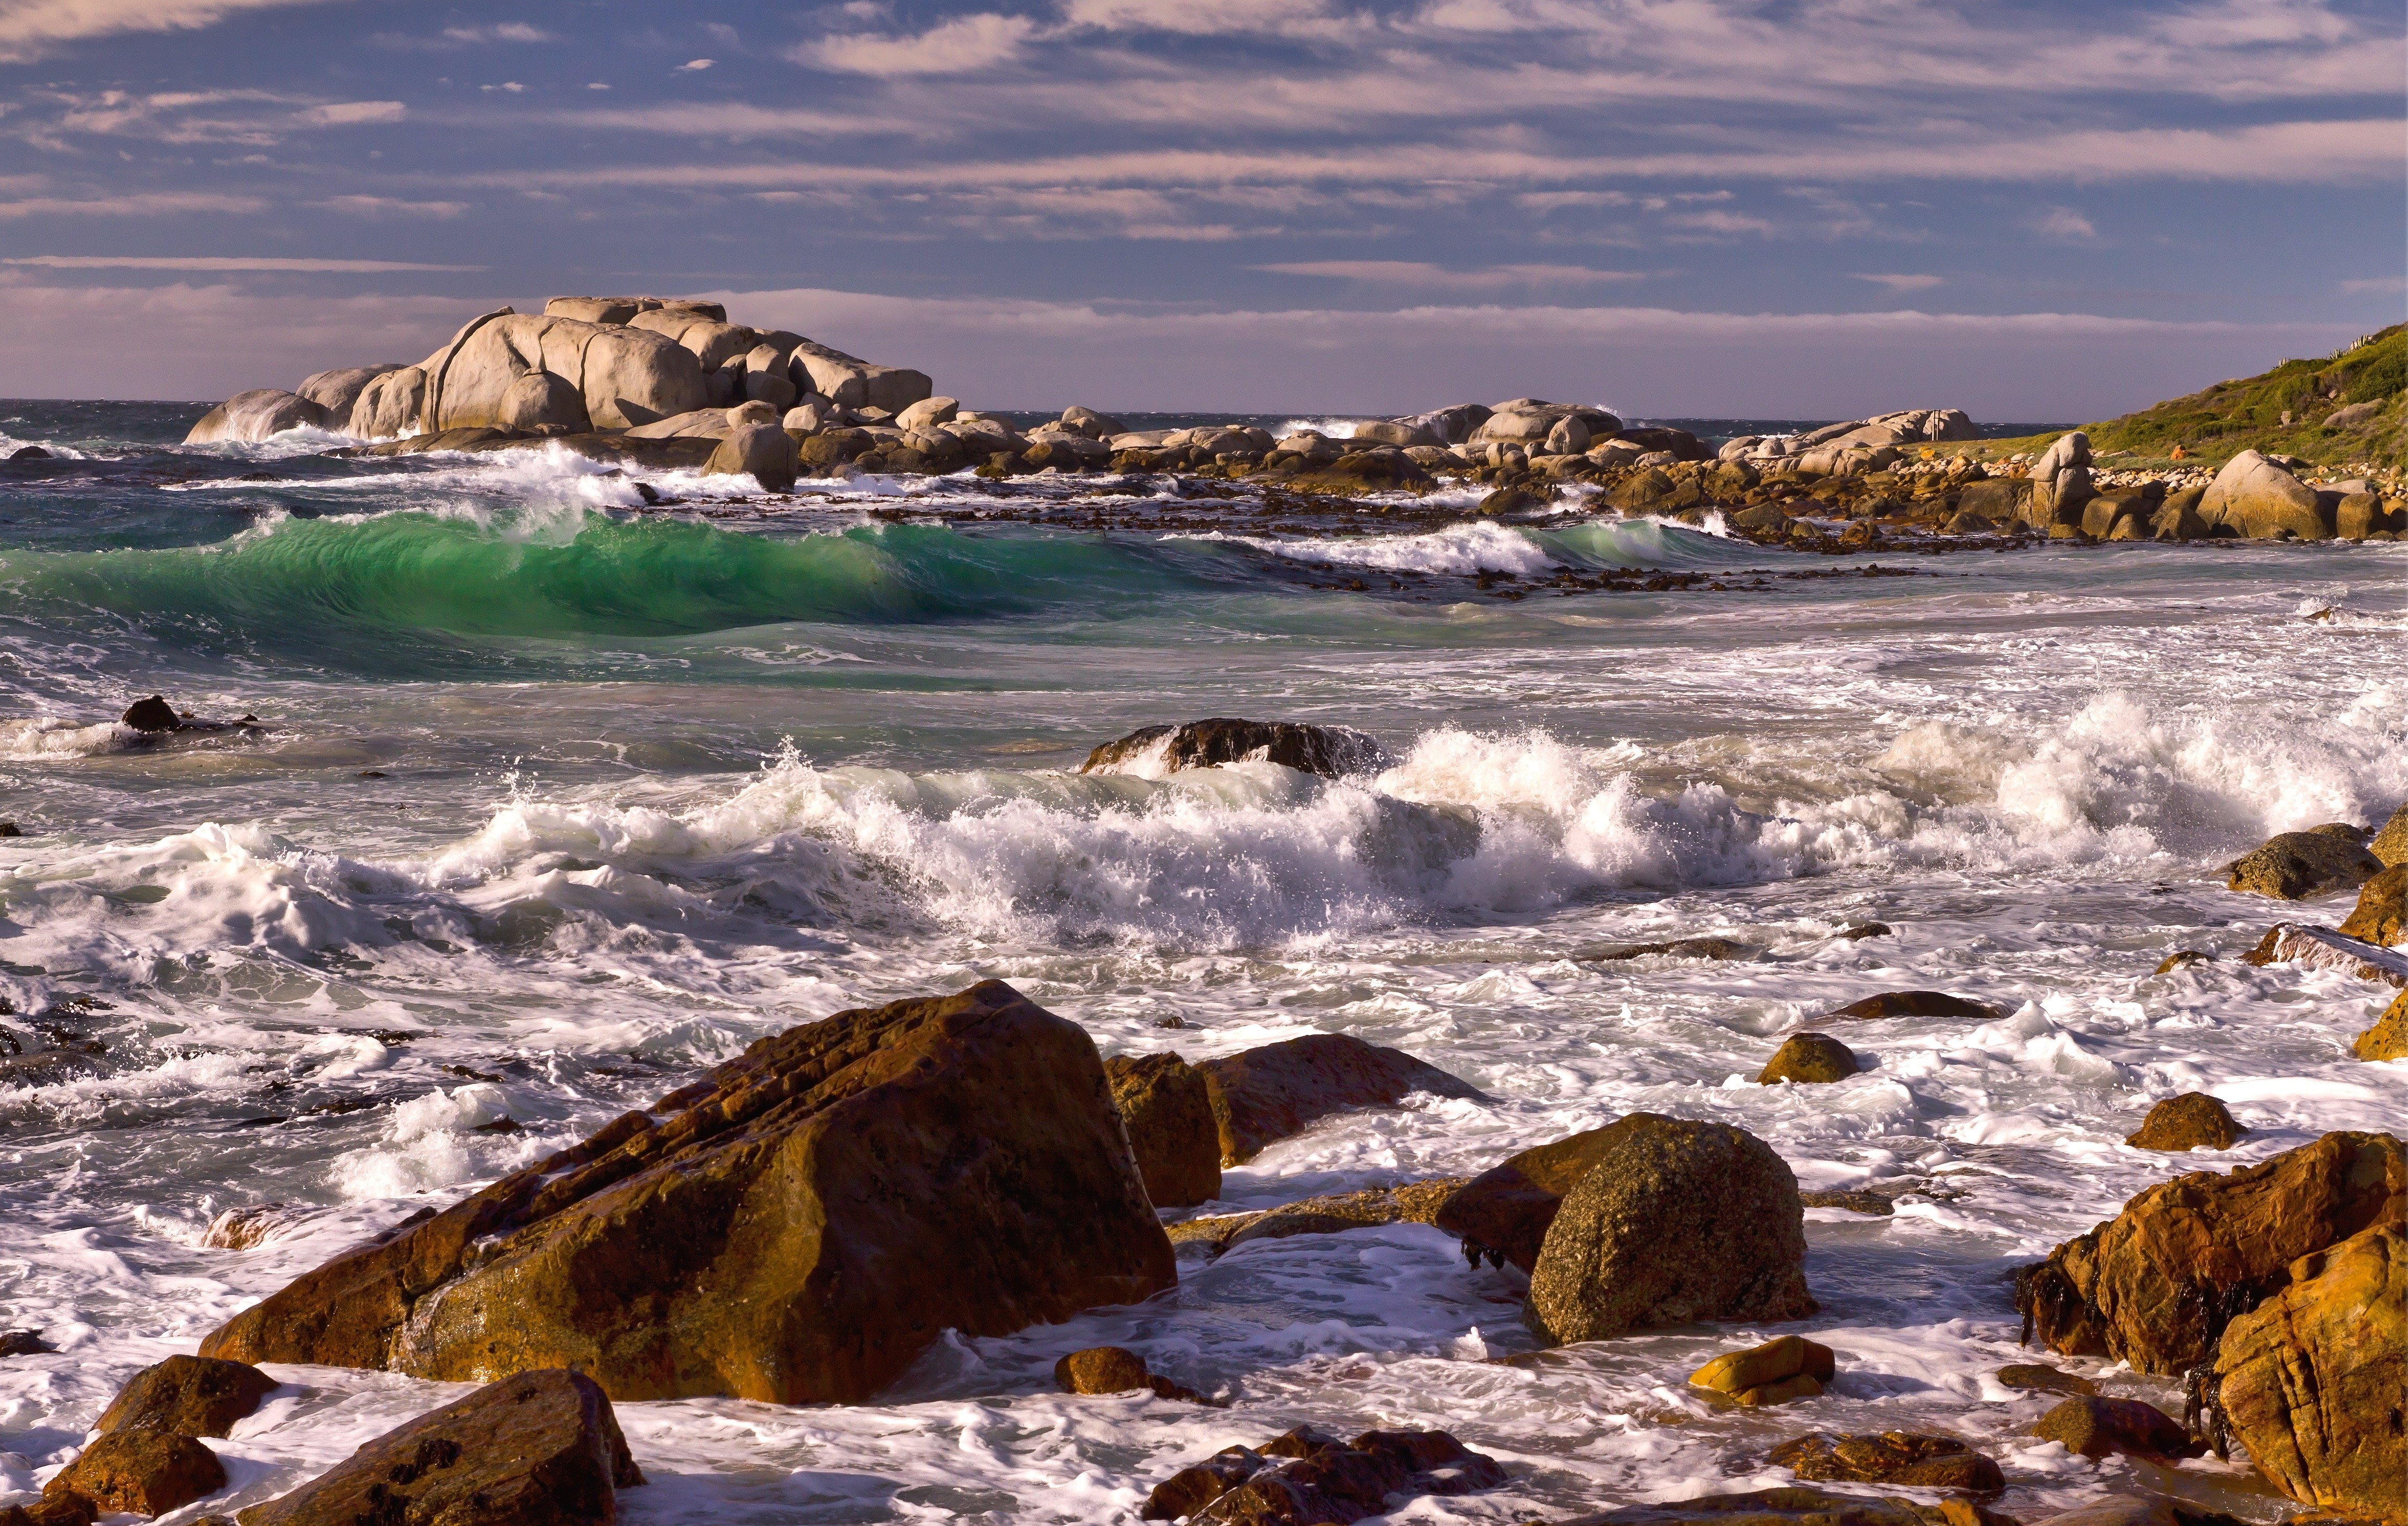 68242 download wallpaper Nature, Sea, Stones, Rocks, Waves, Landscape screensavers and pictures for free